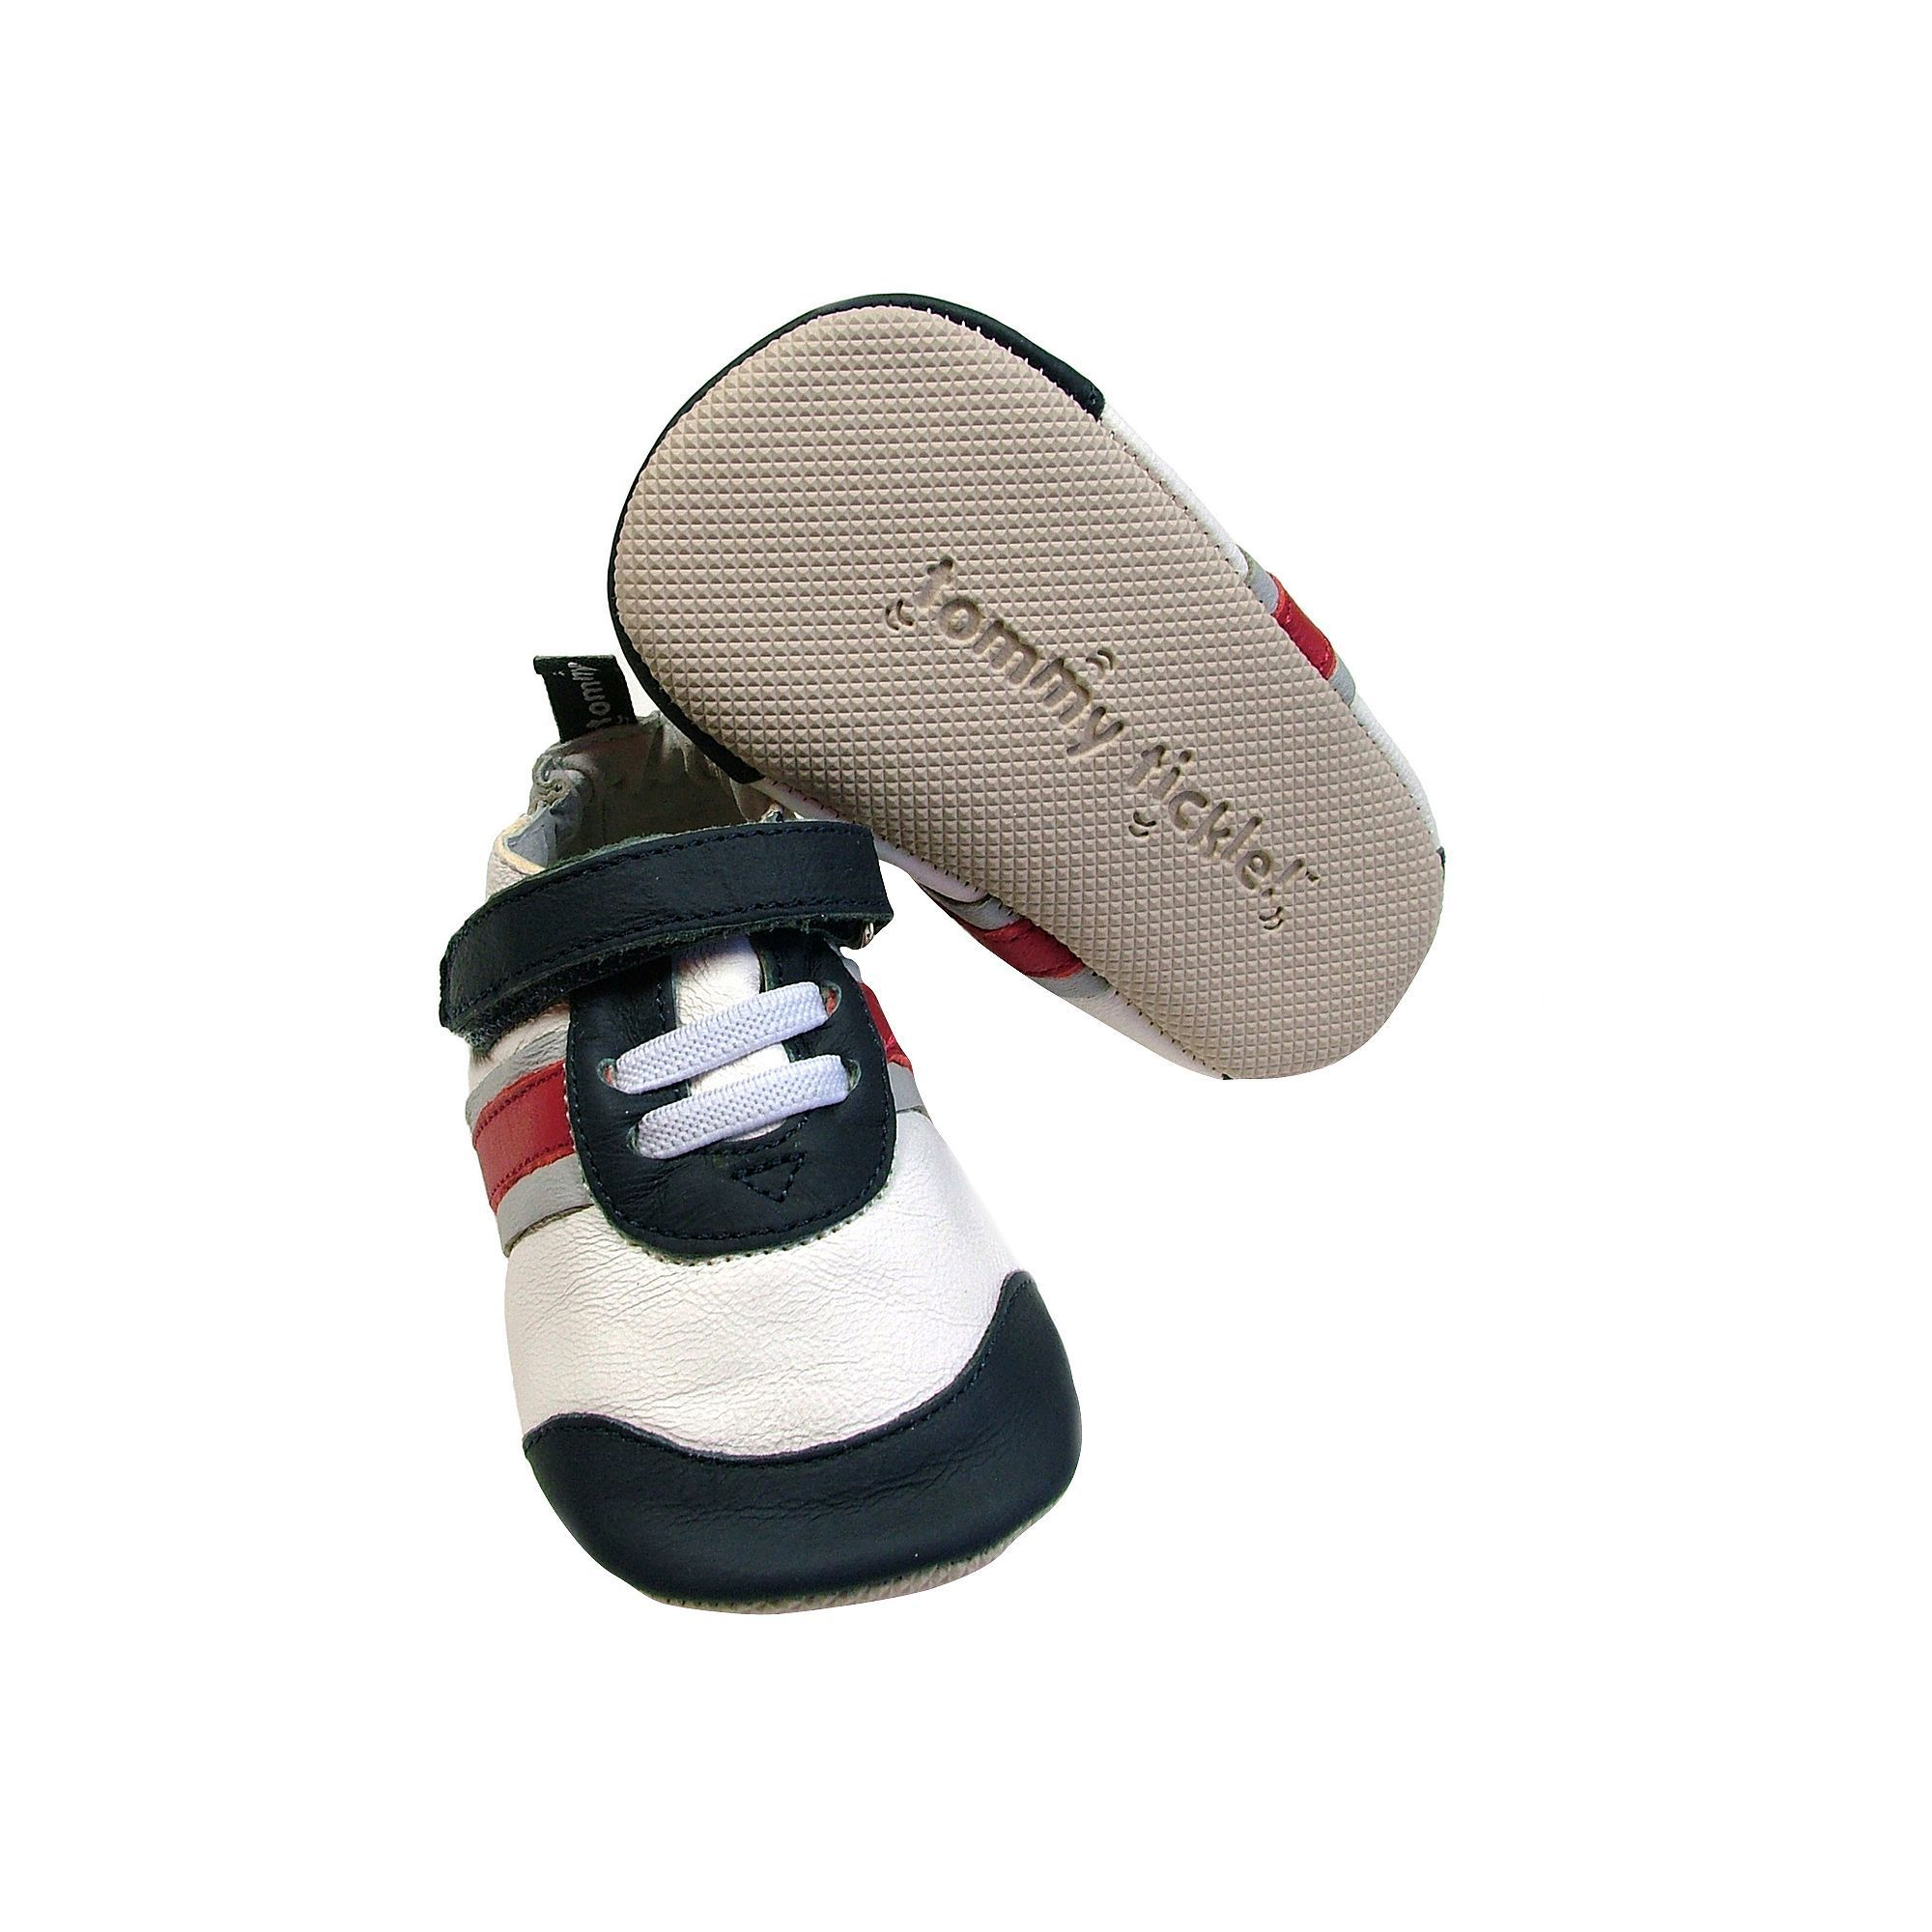 Tommy Tickle Cruzer Sport Baby Shoes Infant Boy s Size 18 24MONTH